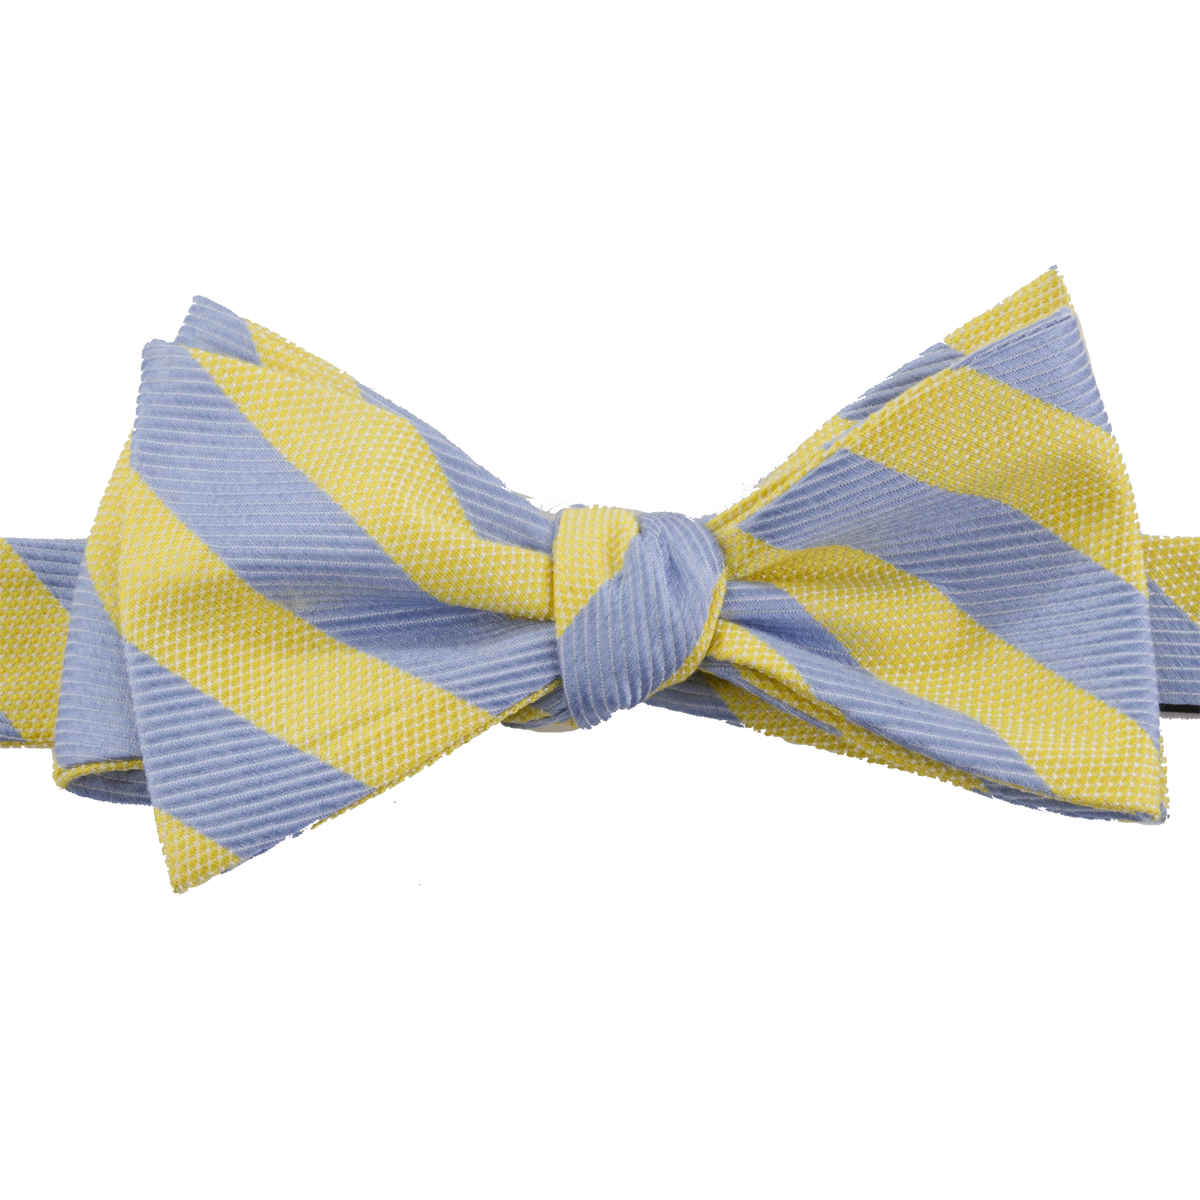 png transparent download Striped Bow Tie PNG Transparent Striped Bow Tie